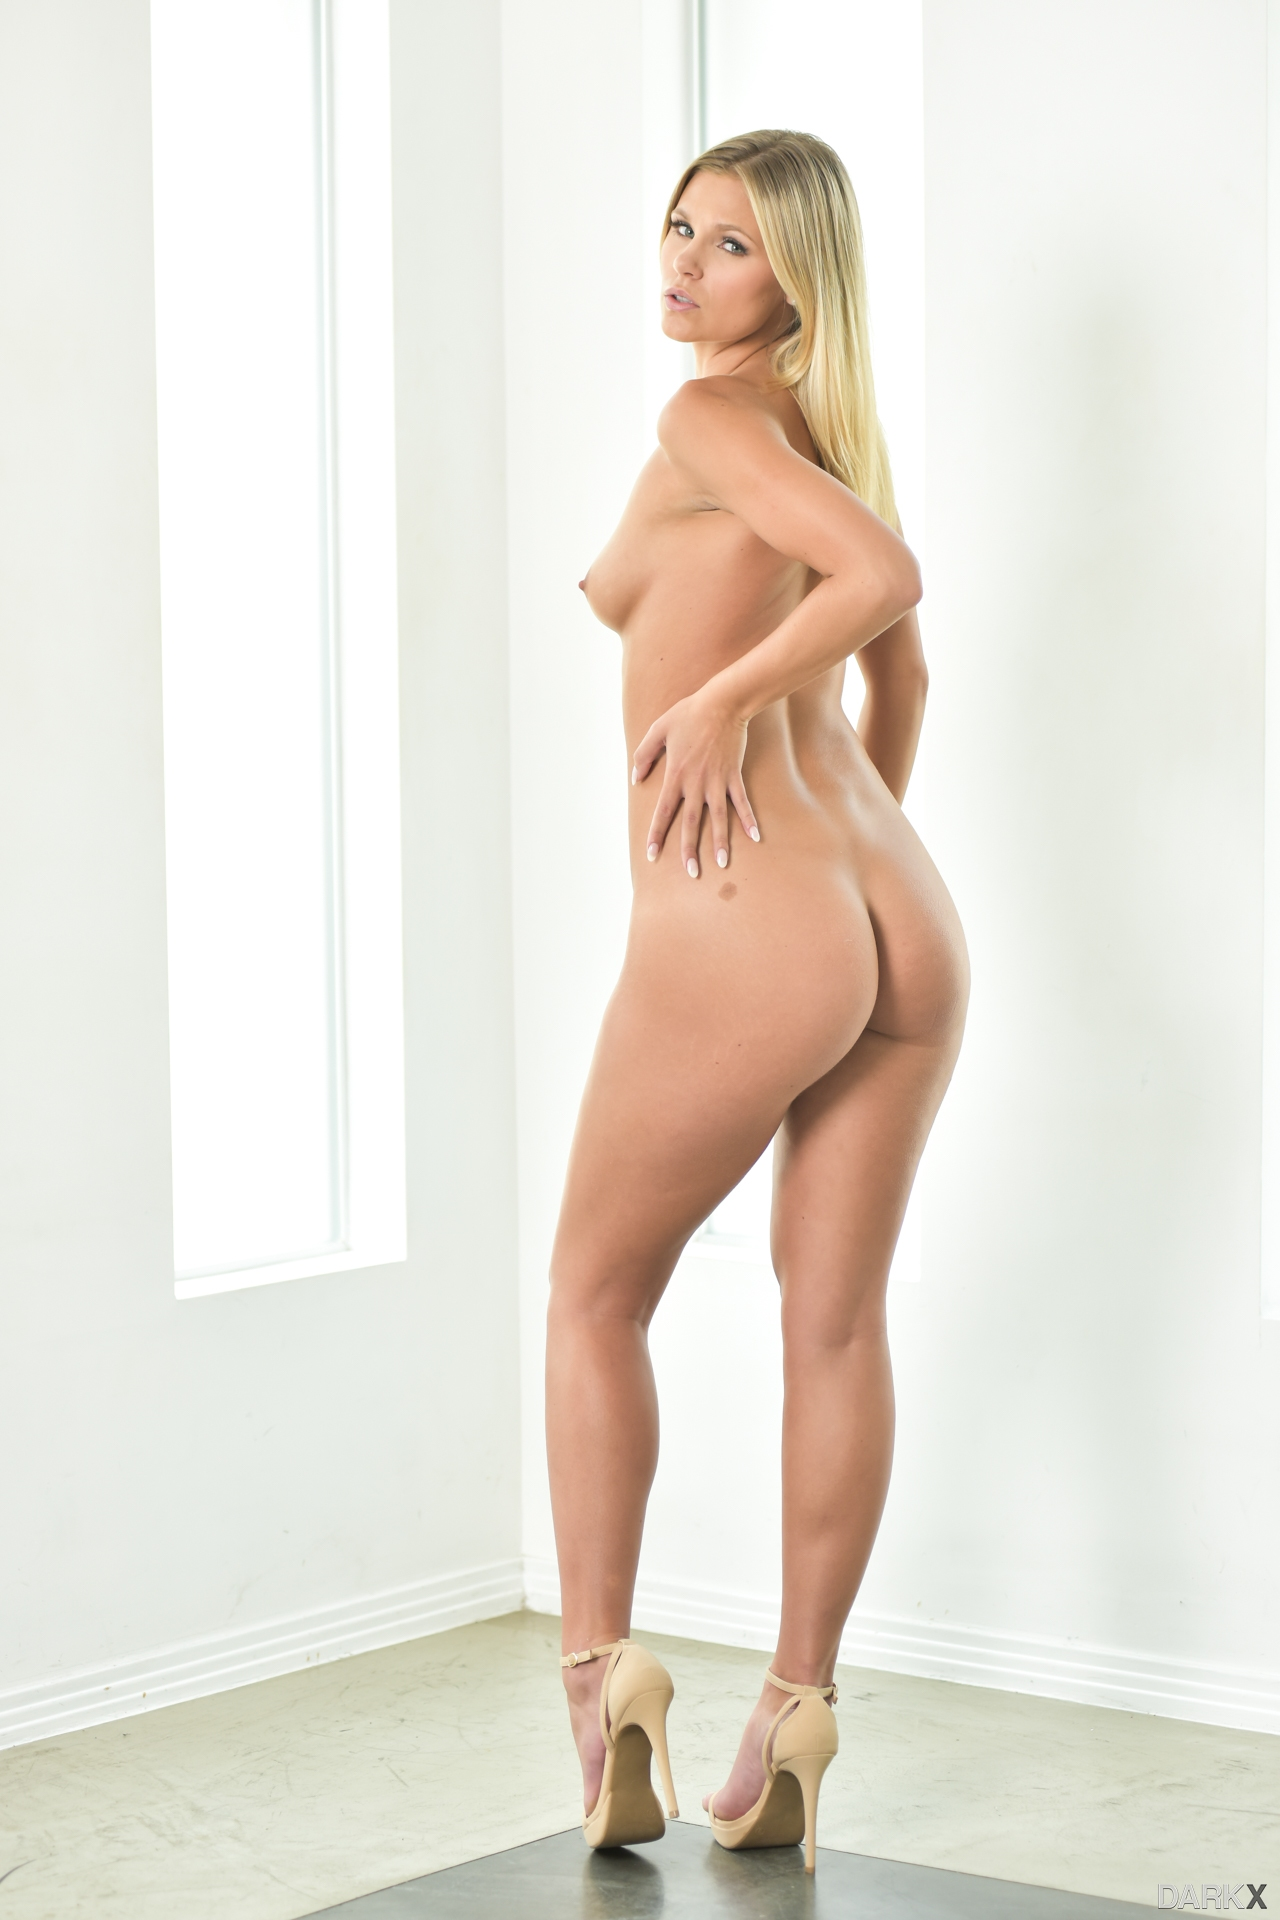 Adorable tall amateur blonde poses nude